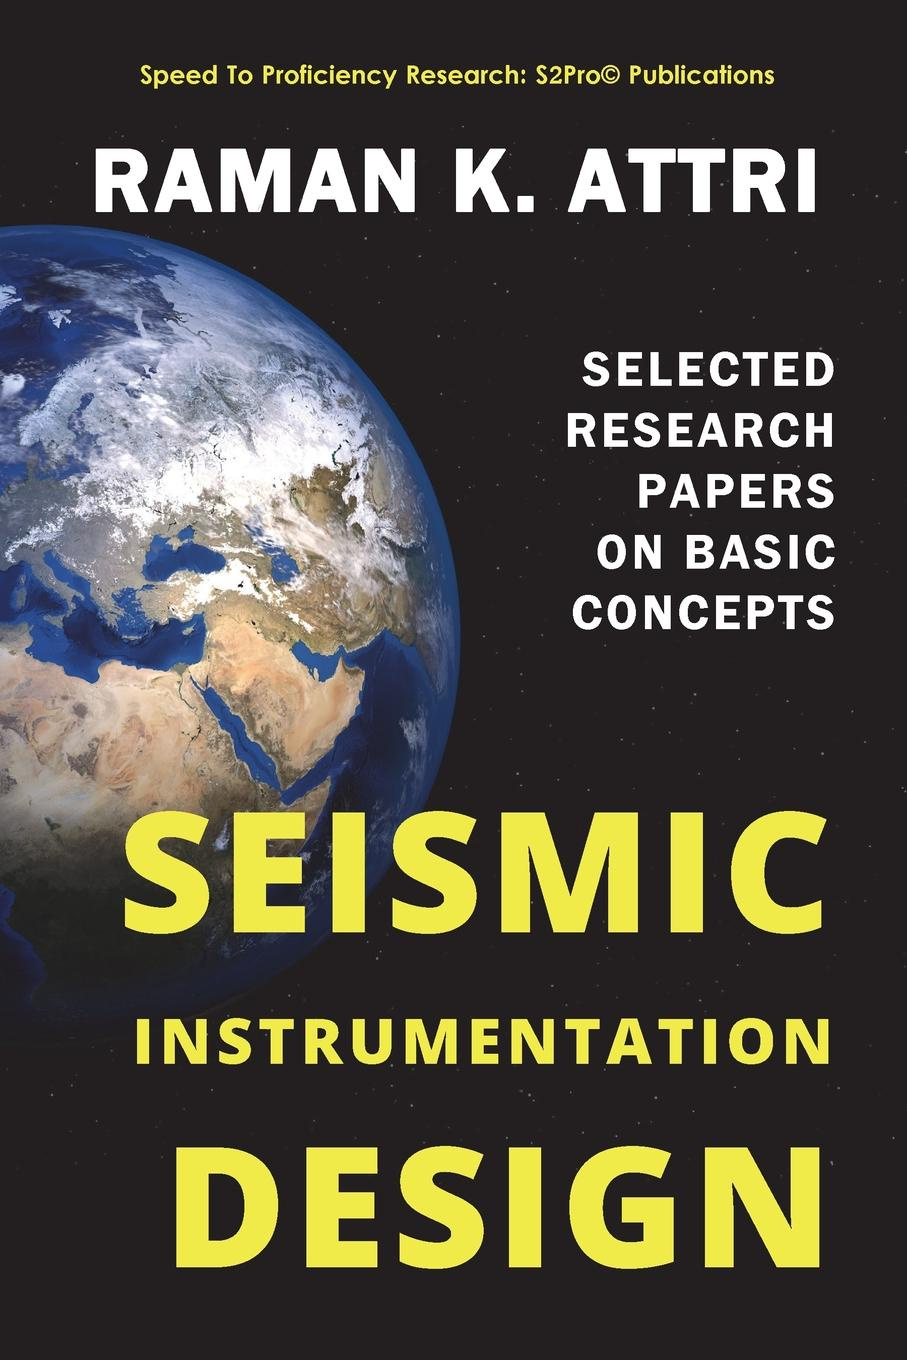 Raman K. Attri Seismic Instrumentation Design. Selected Research Papers on Basic Concepts